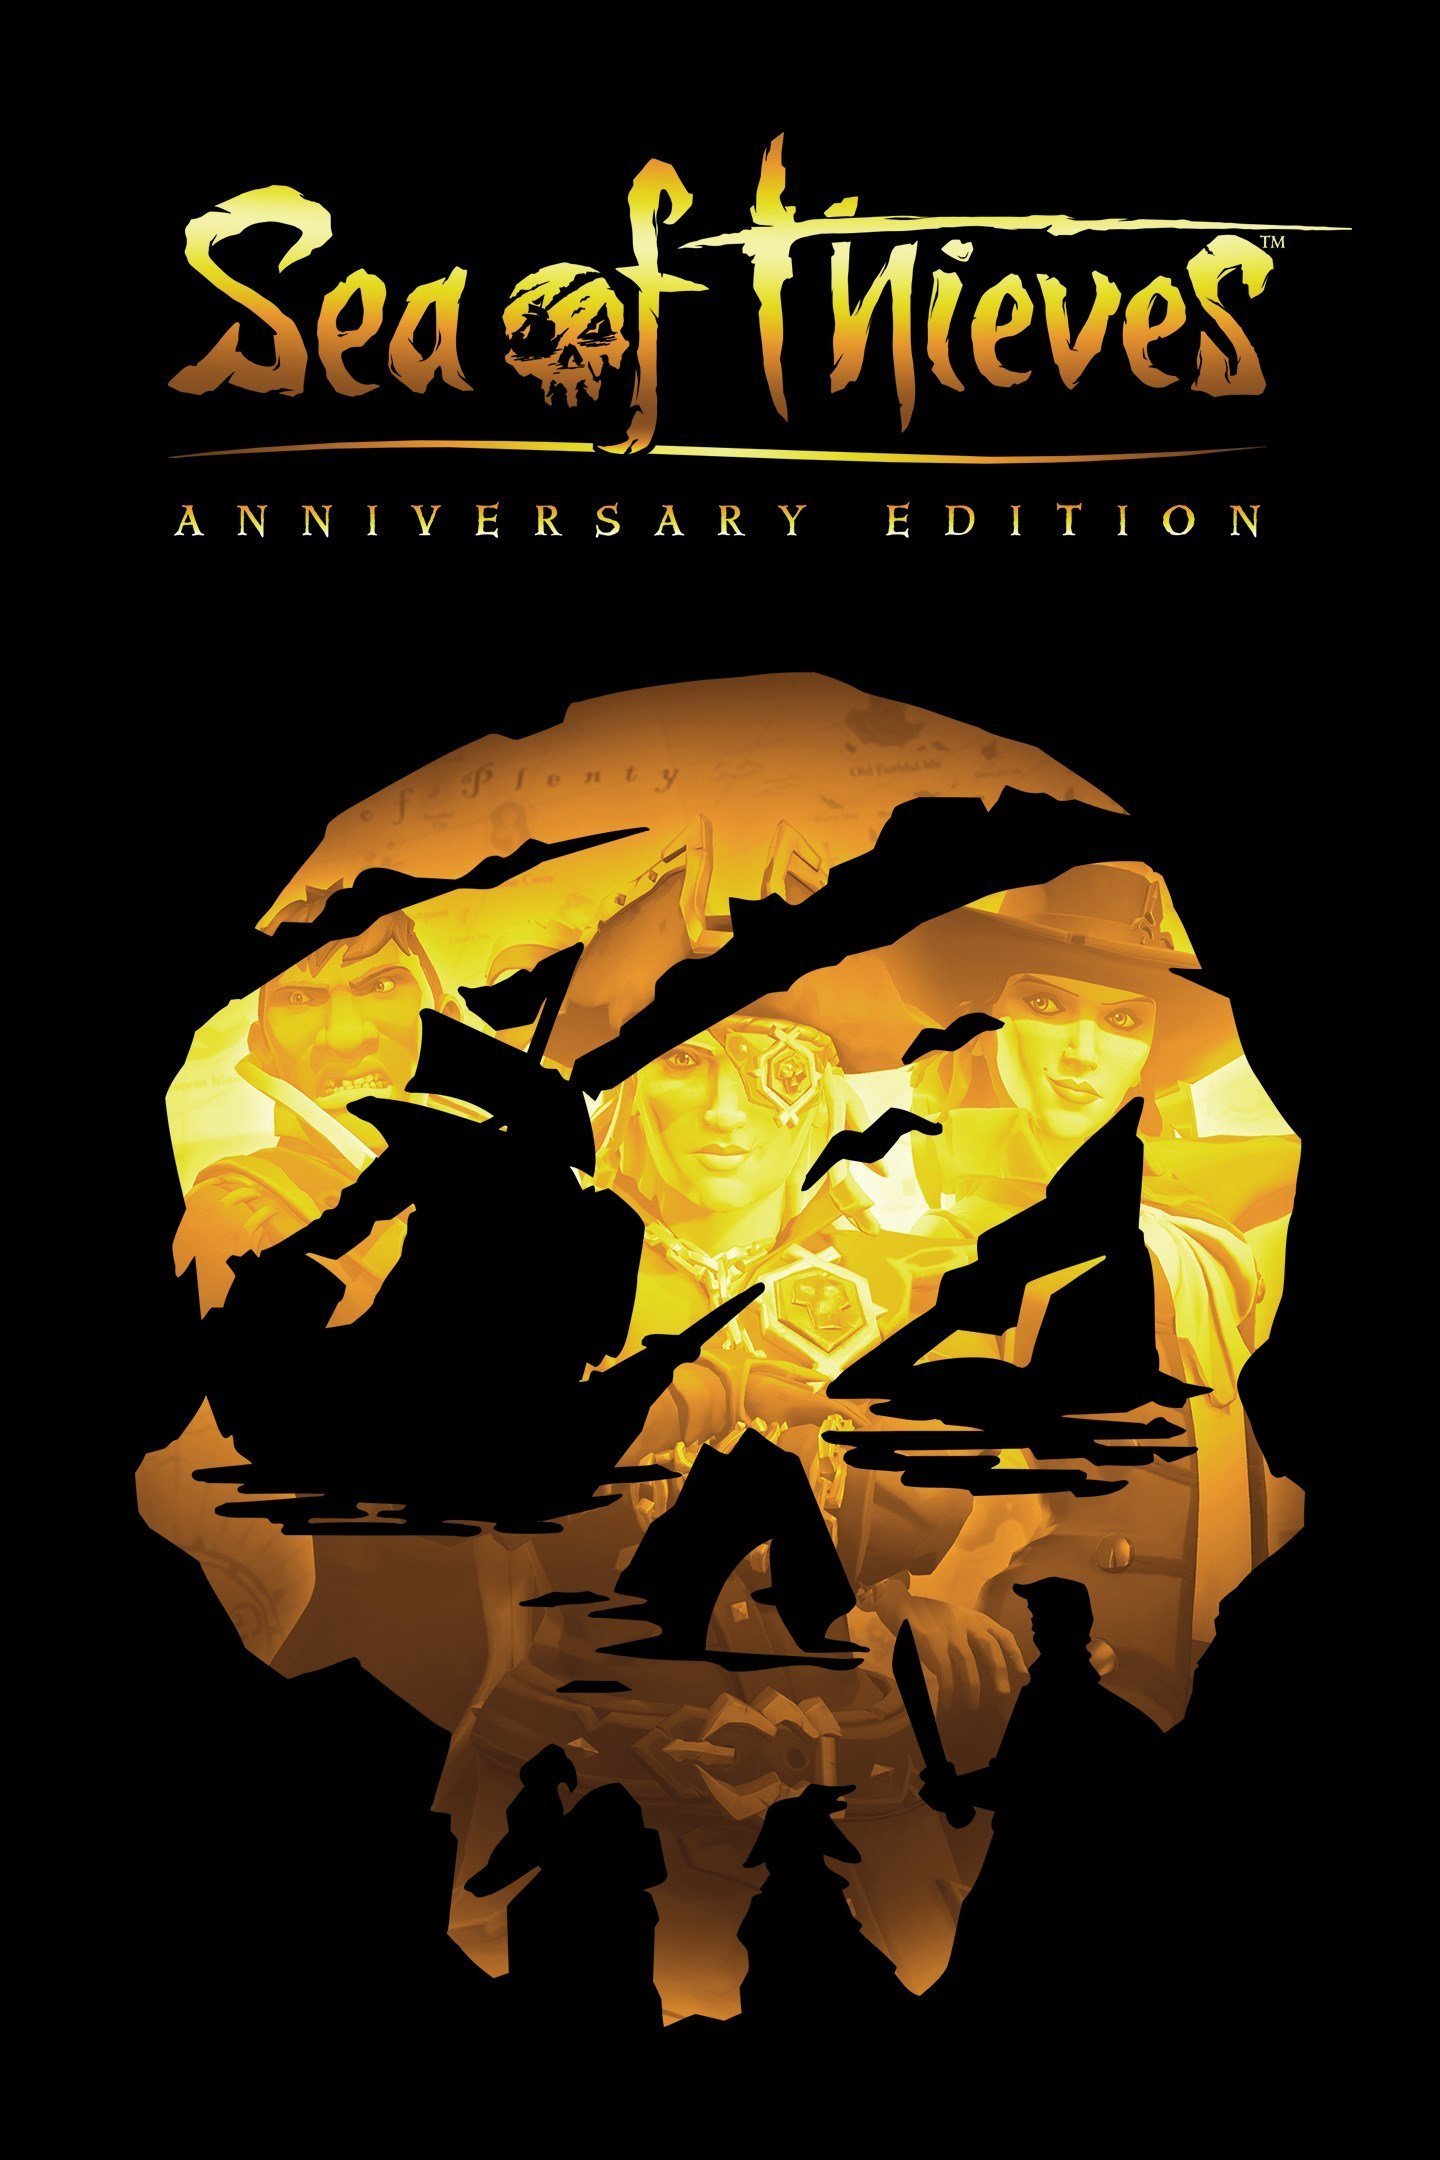 Sea of Thieves: Anniversary Edition (2018)